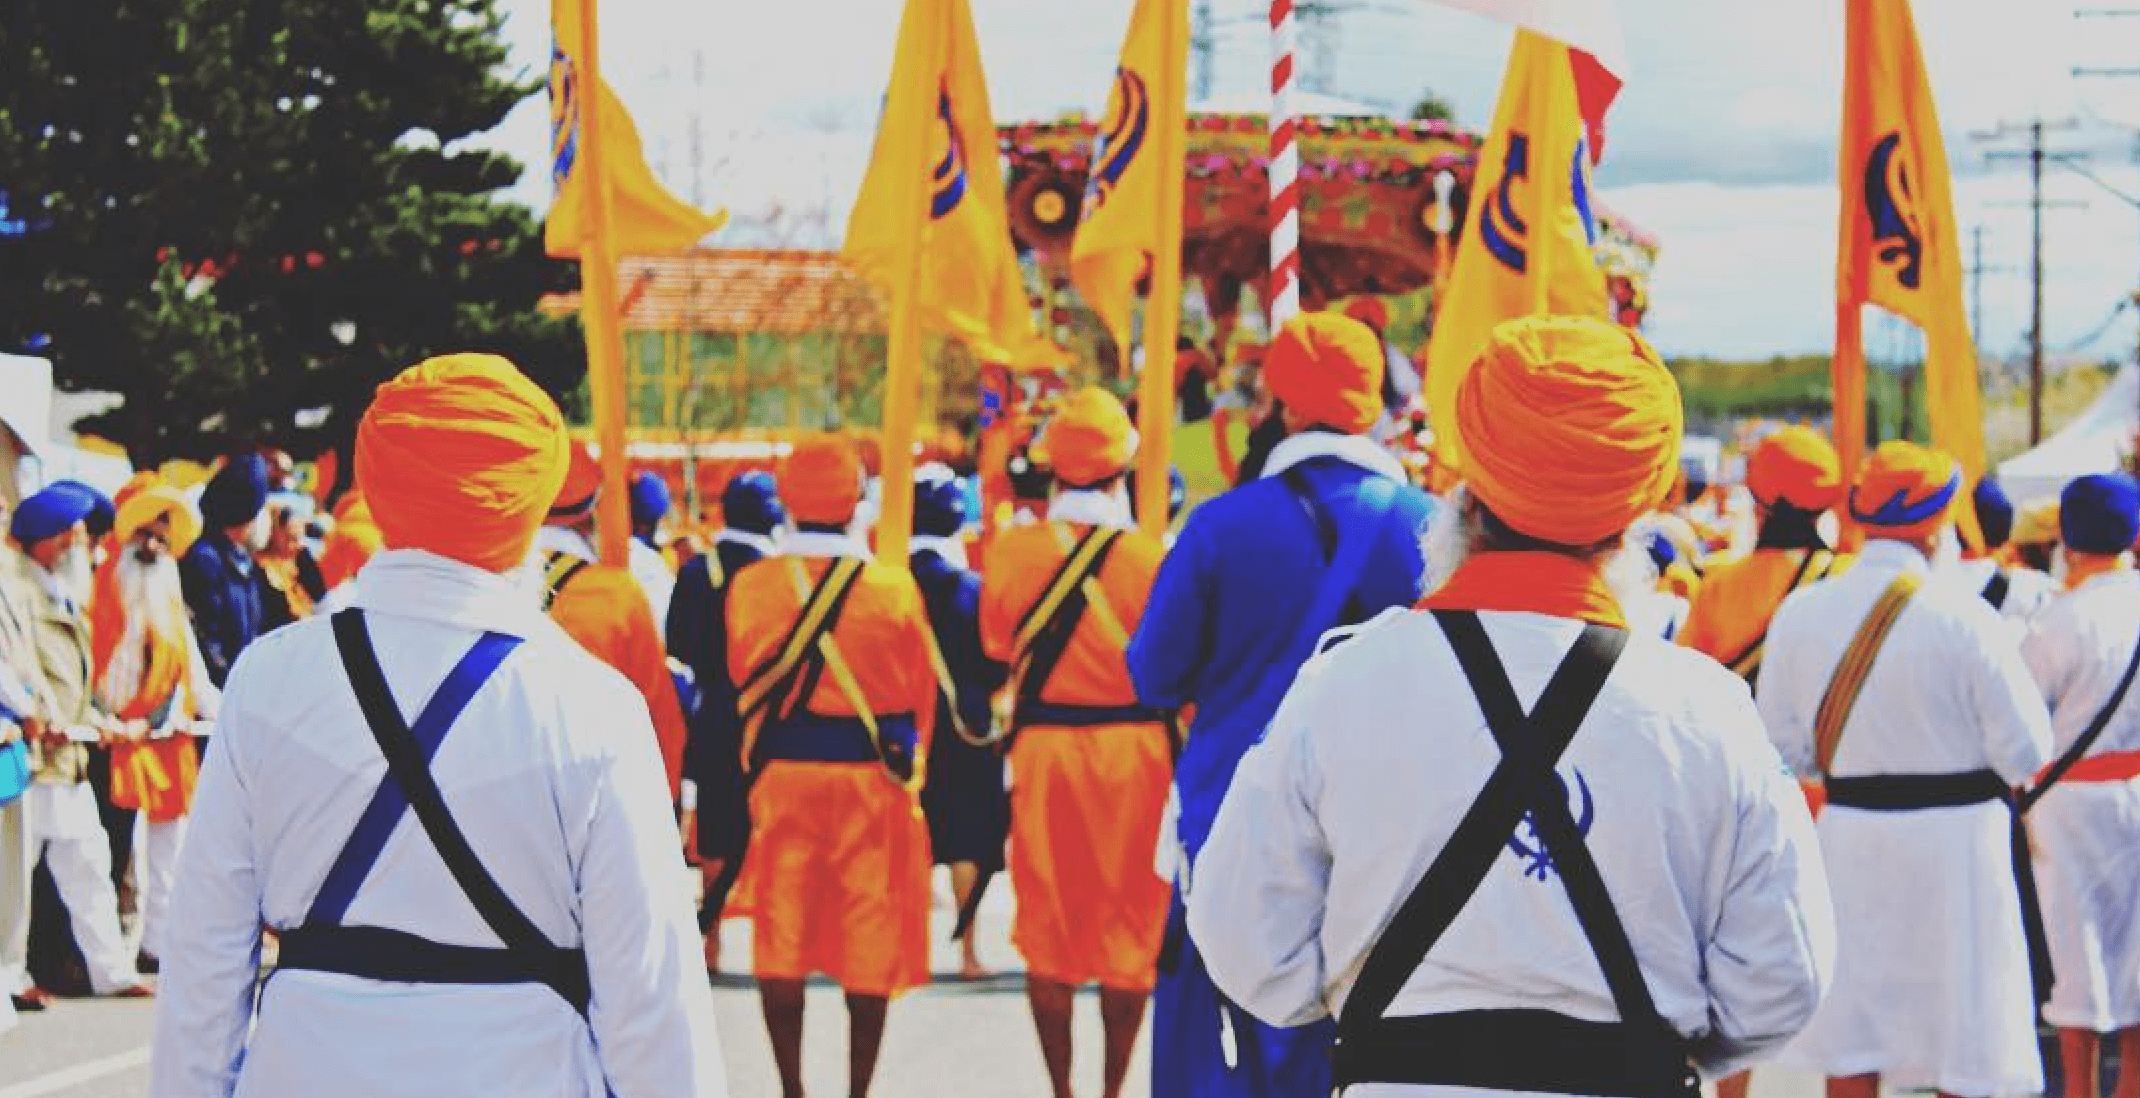 These are all the events celebrating Sikh Heritage Month in BC